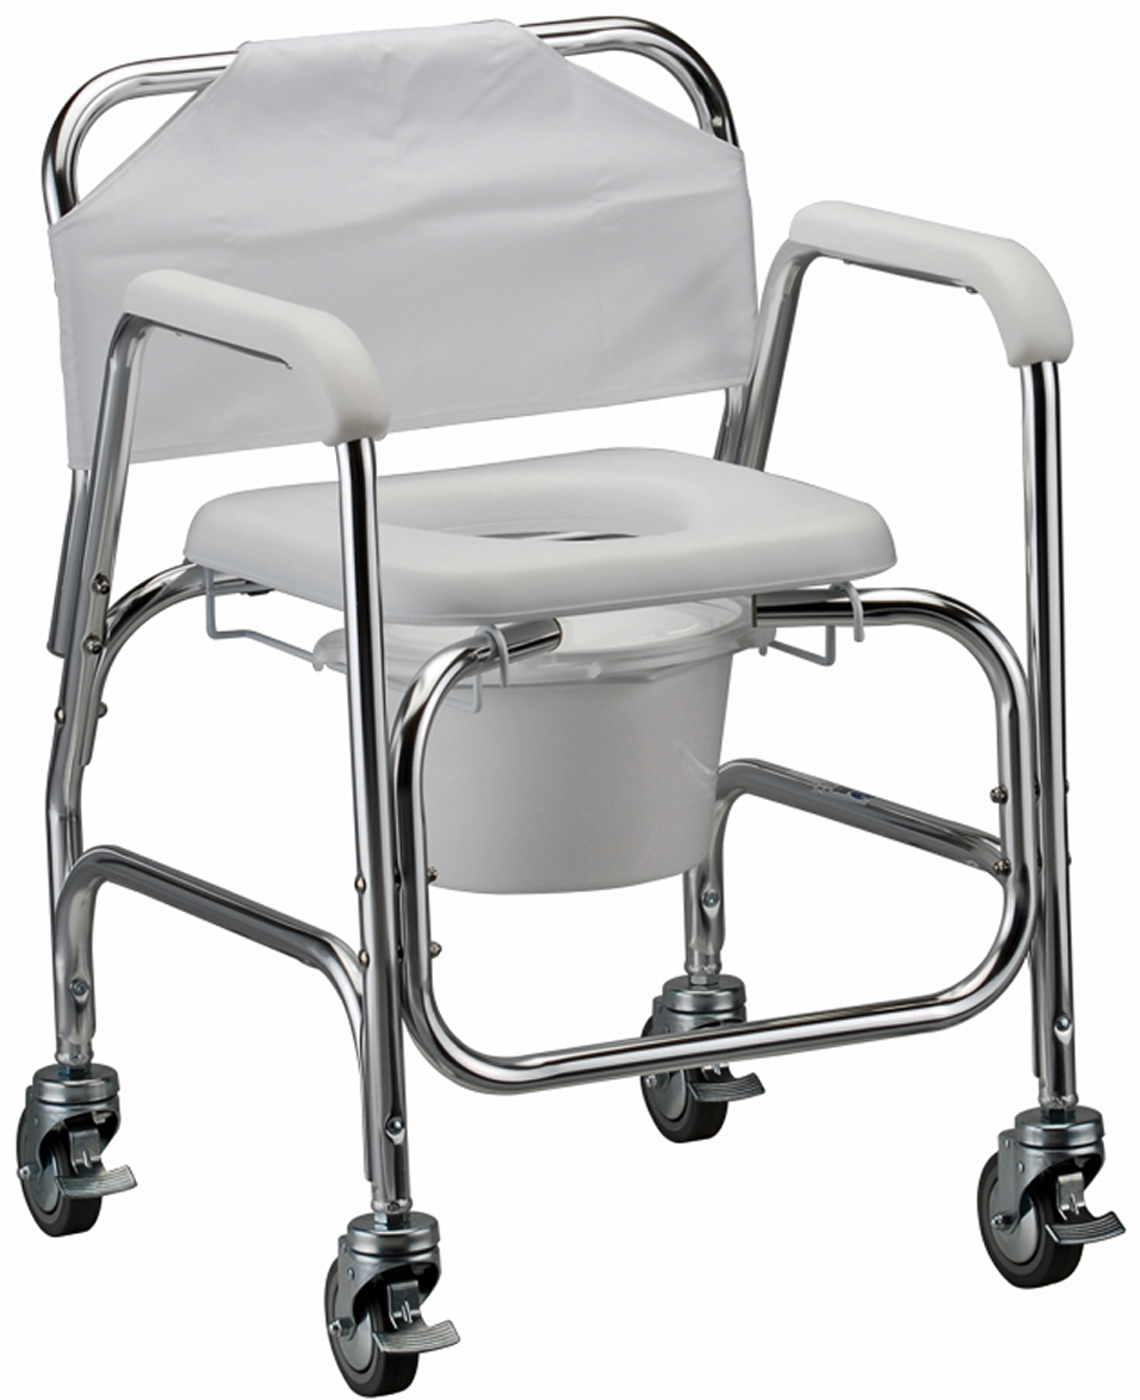 rolling bath chair overstock dining room chairs nova shower and commode with wheels 250 lb capacity